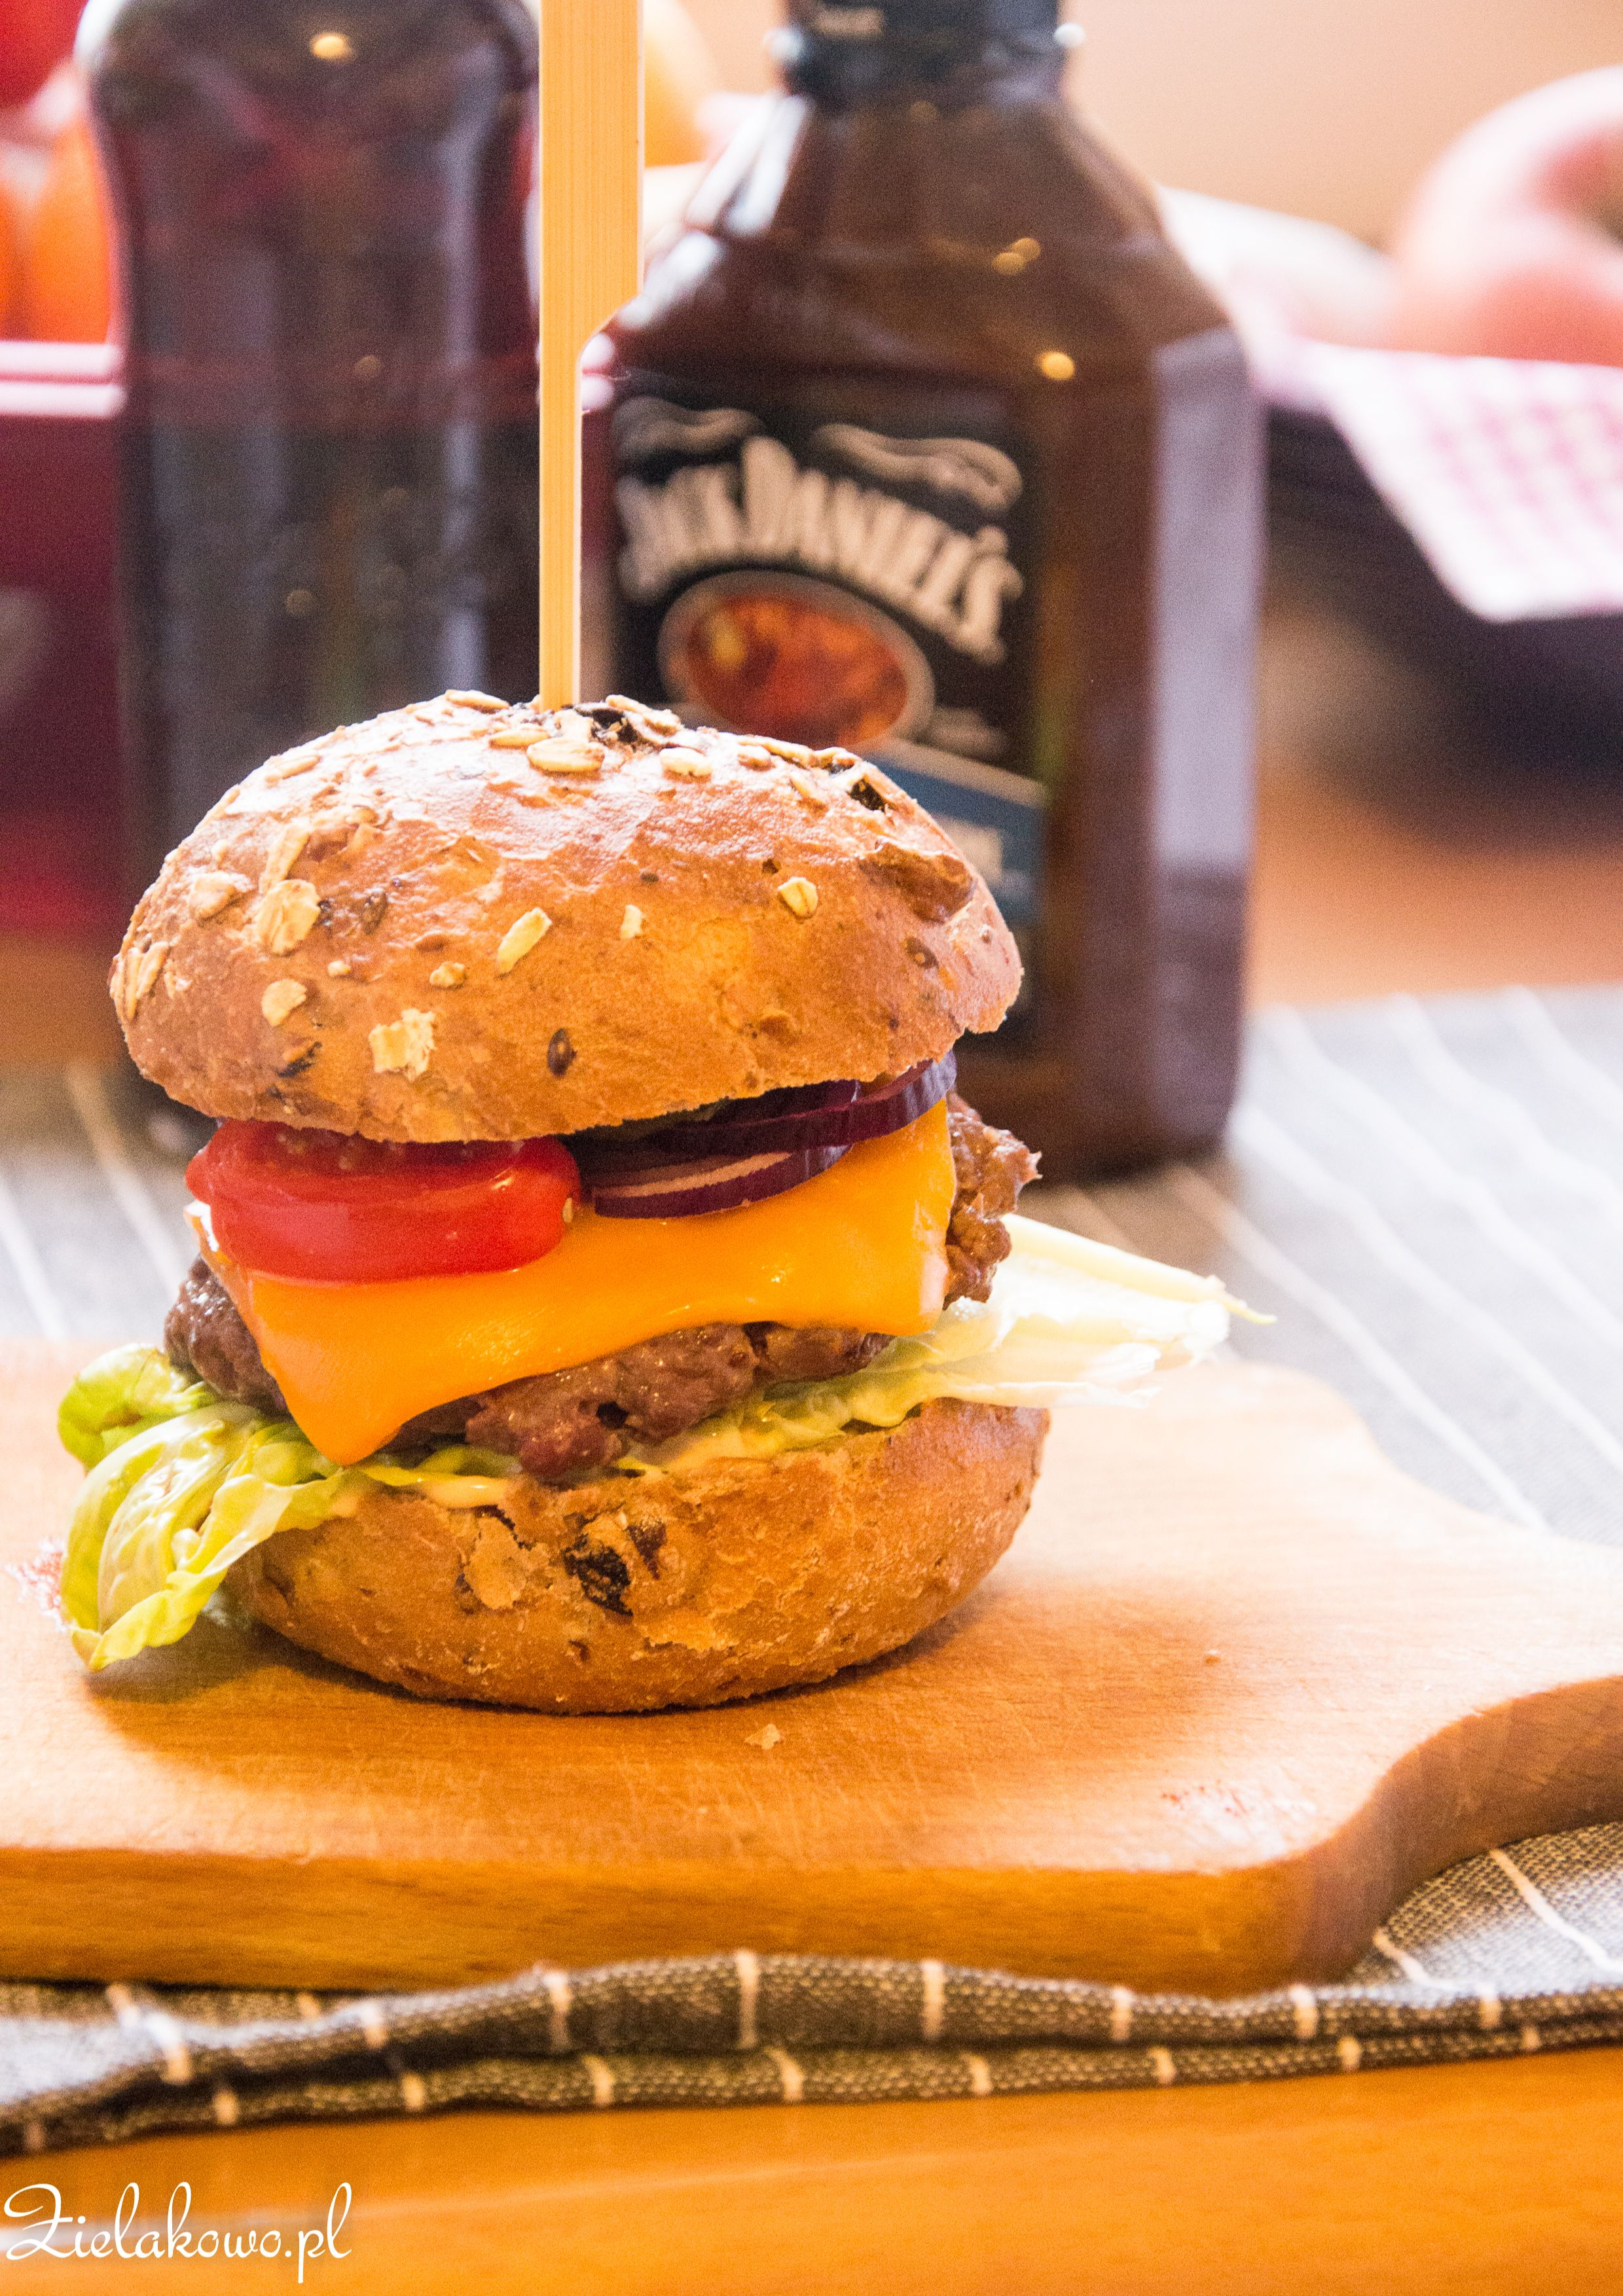 Home made cheeseburger | Old fashioned burgers | Pinterest